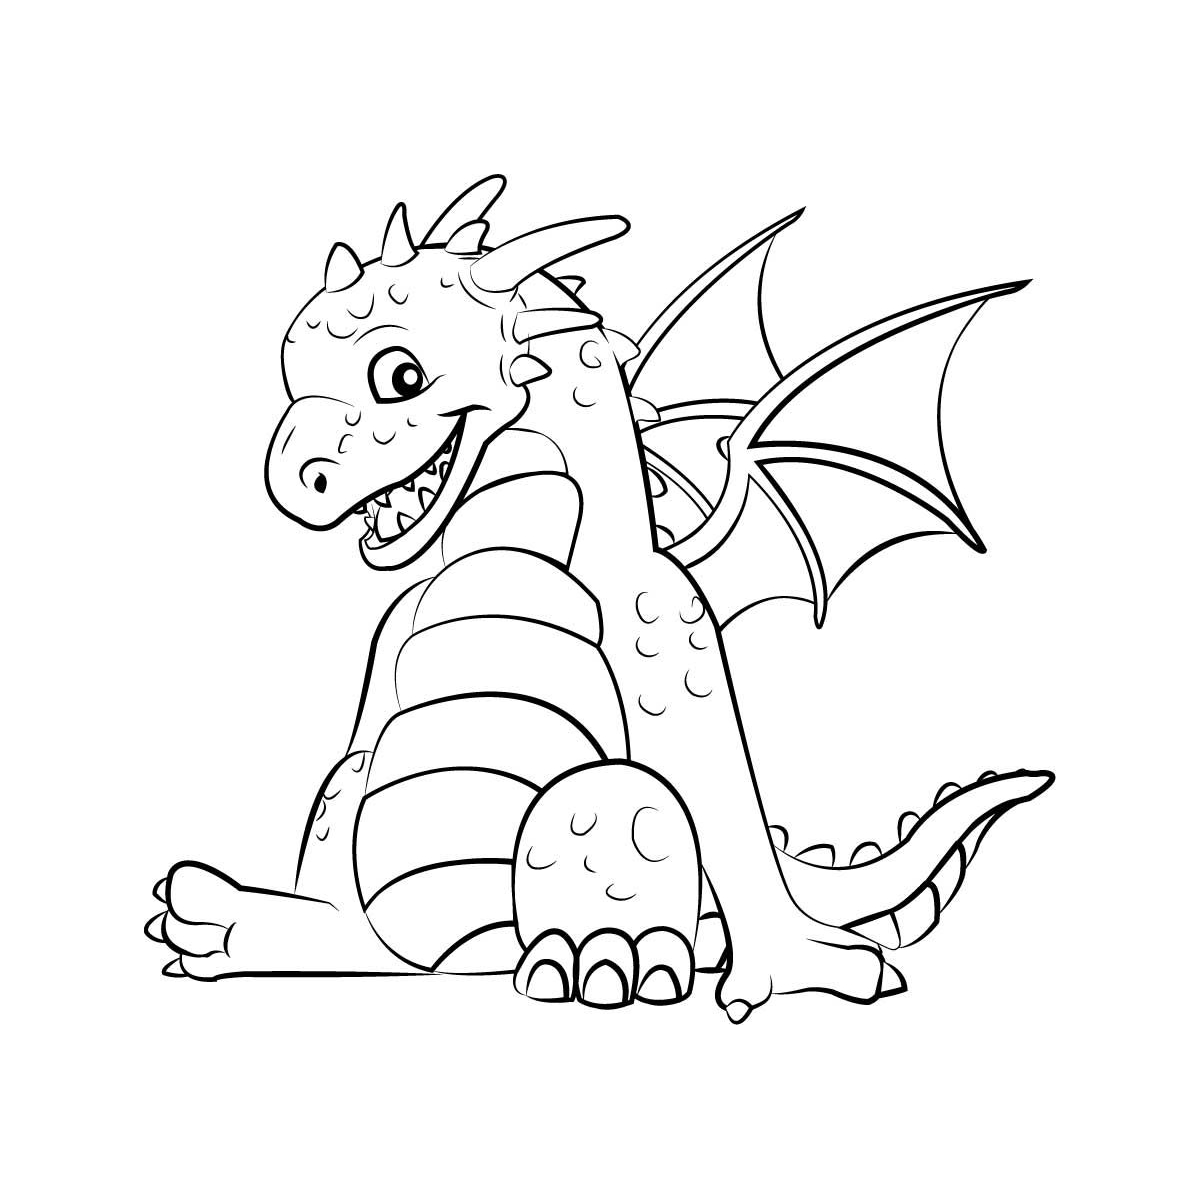 This is an image of Rare Dragon Coloring Picture